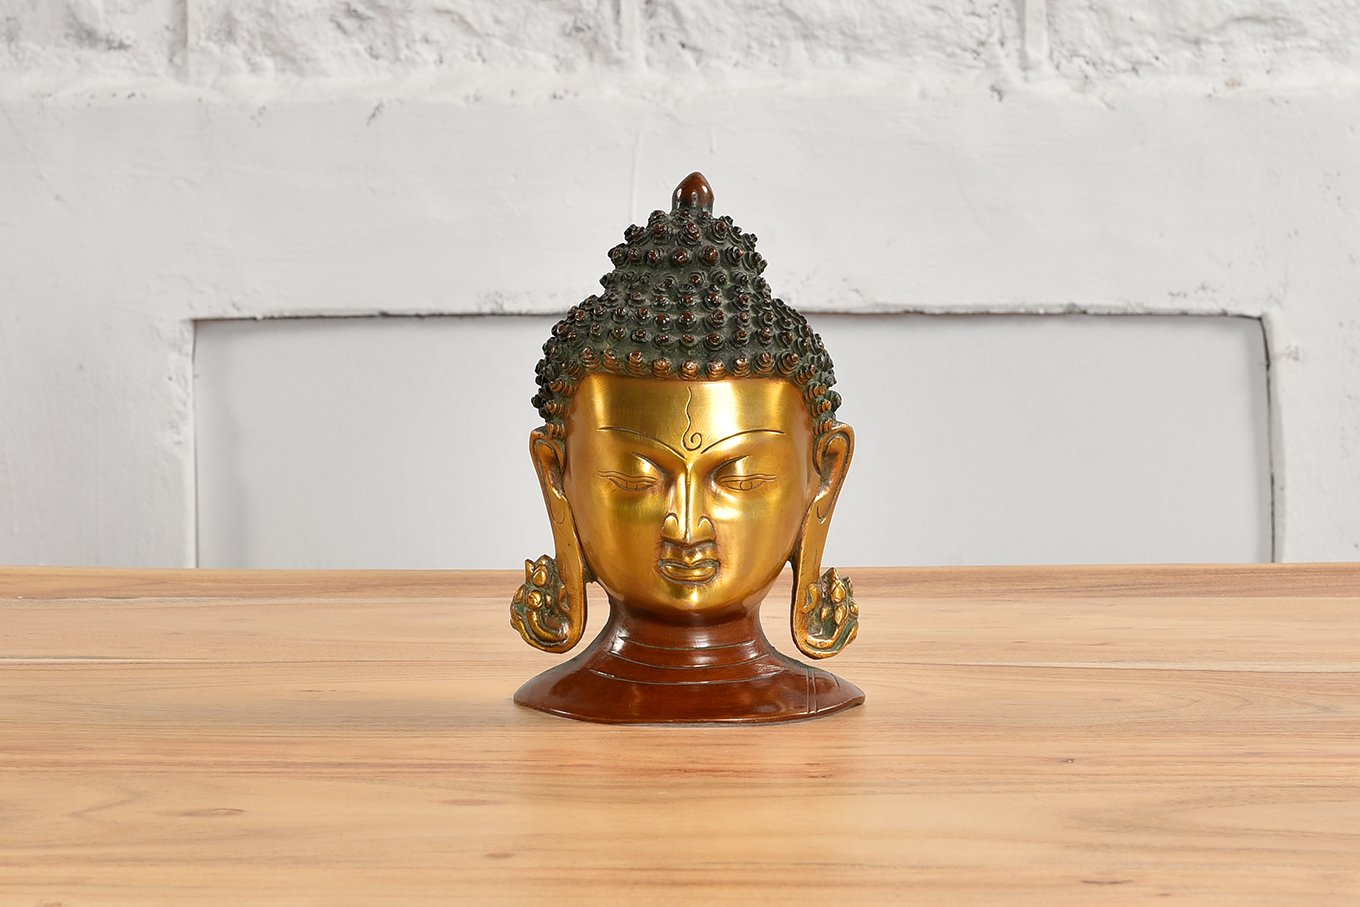 Head of Buddha in brass